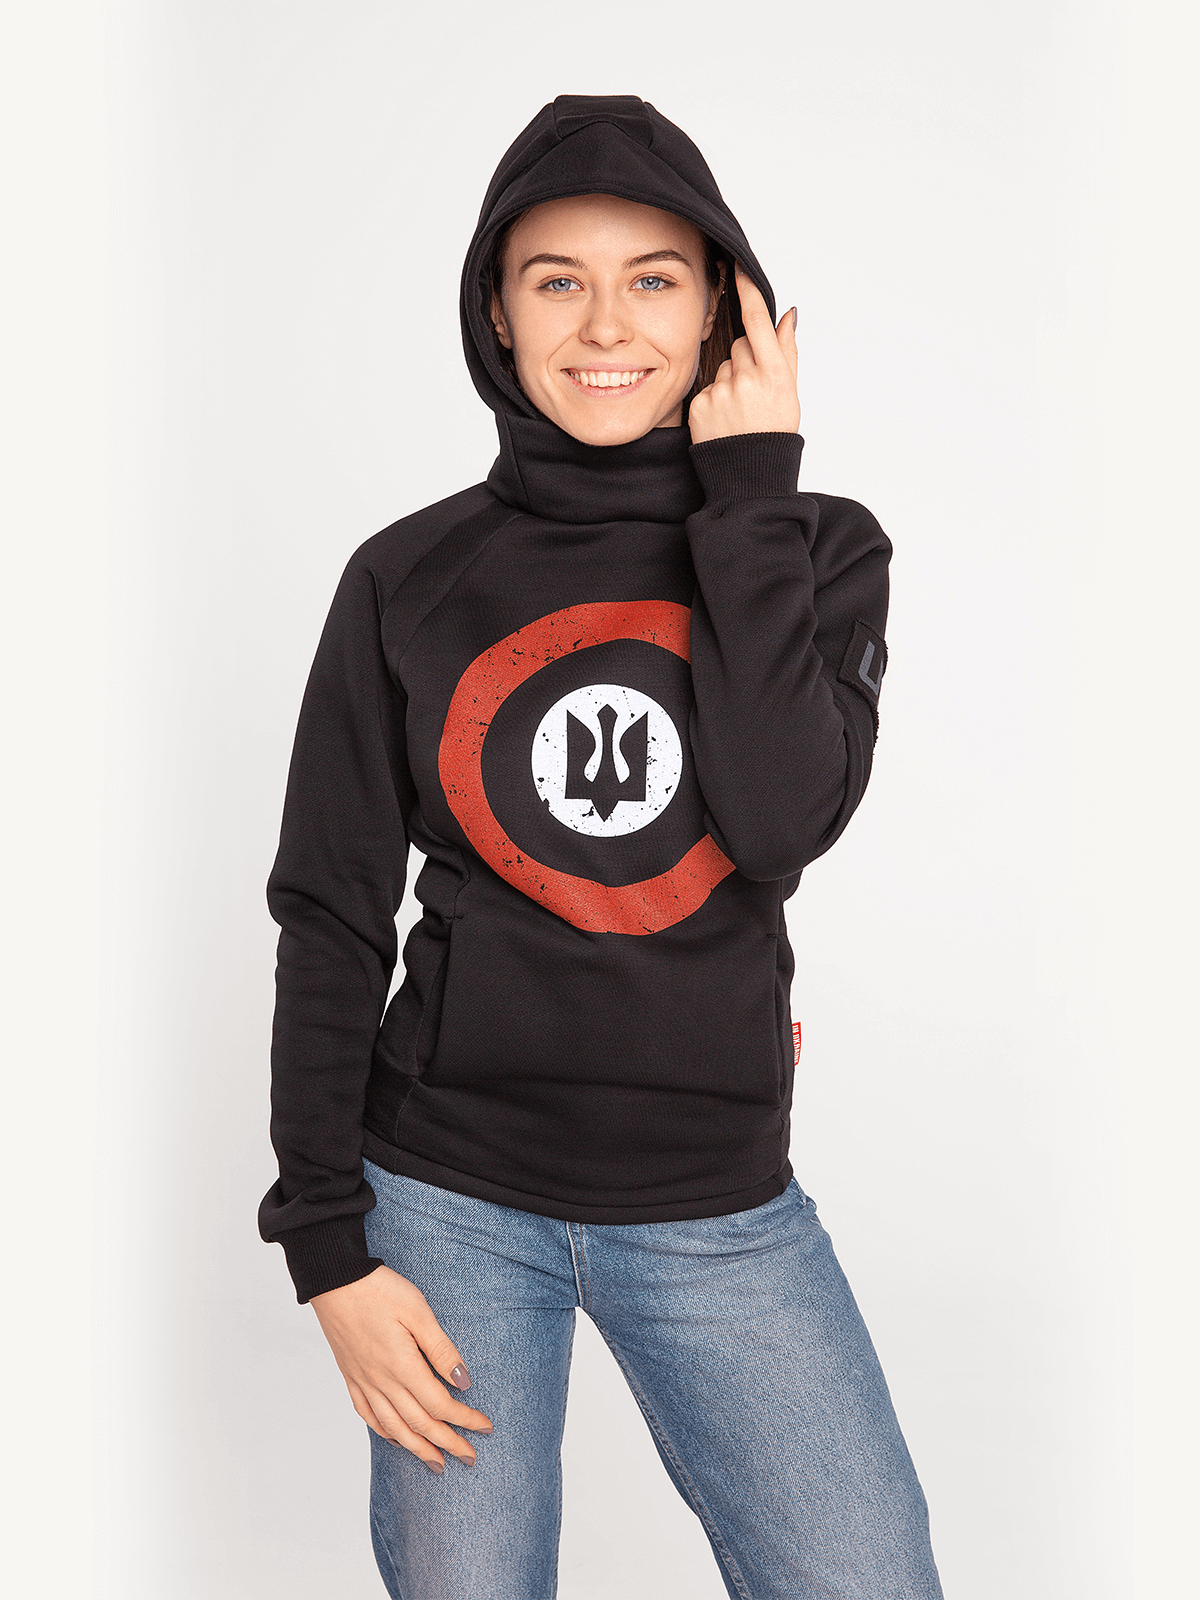 Women's Hoodie Roundel. Color black.  It looks great on a female figure! Three-cord thread fabric: 77% cotton, 23% polyester.